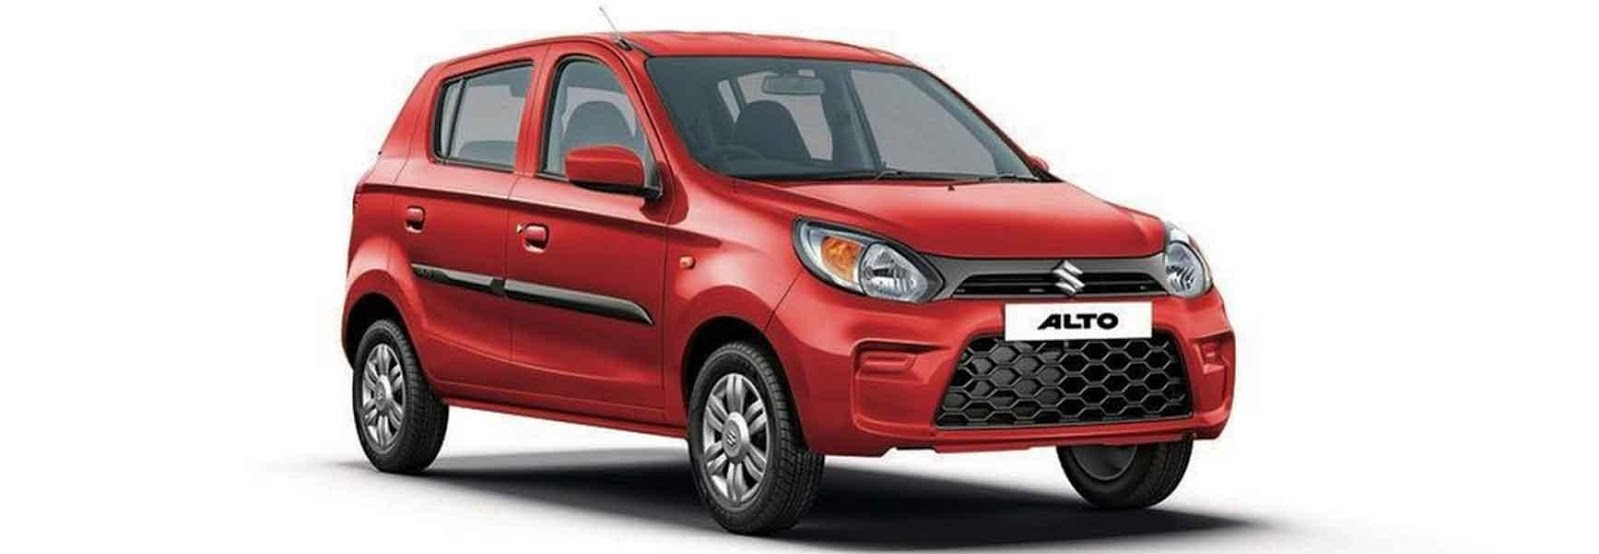 maruti-suzuki-alto-red-low-maintainence-cost